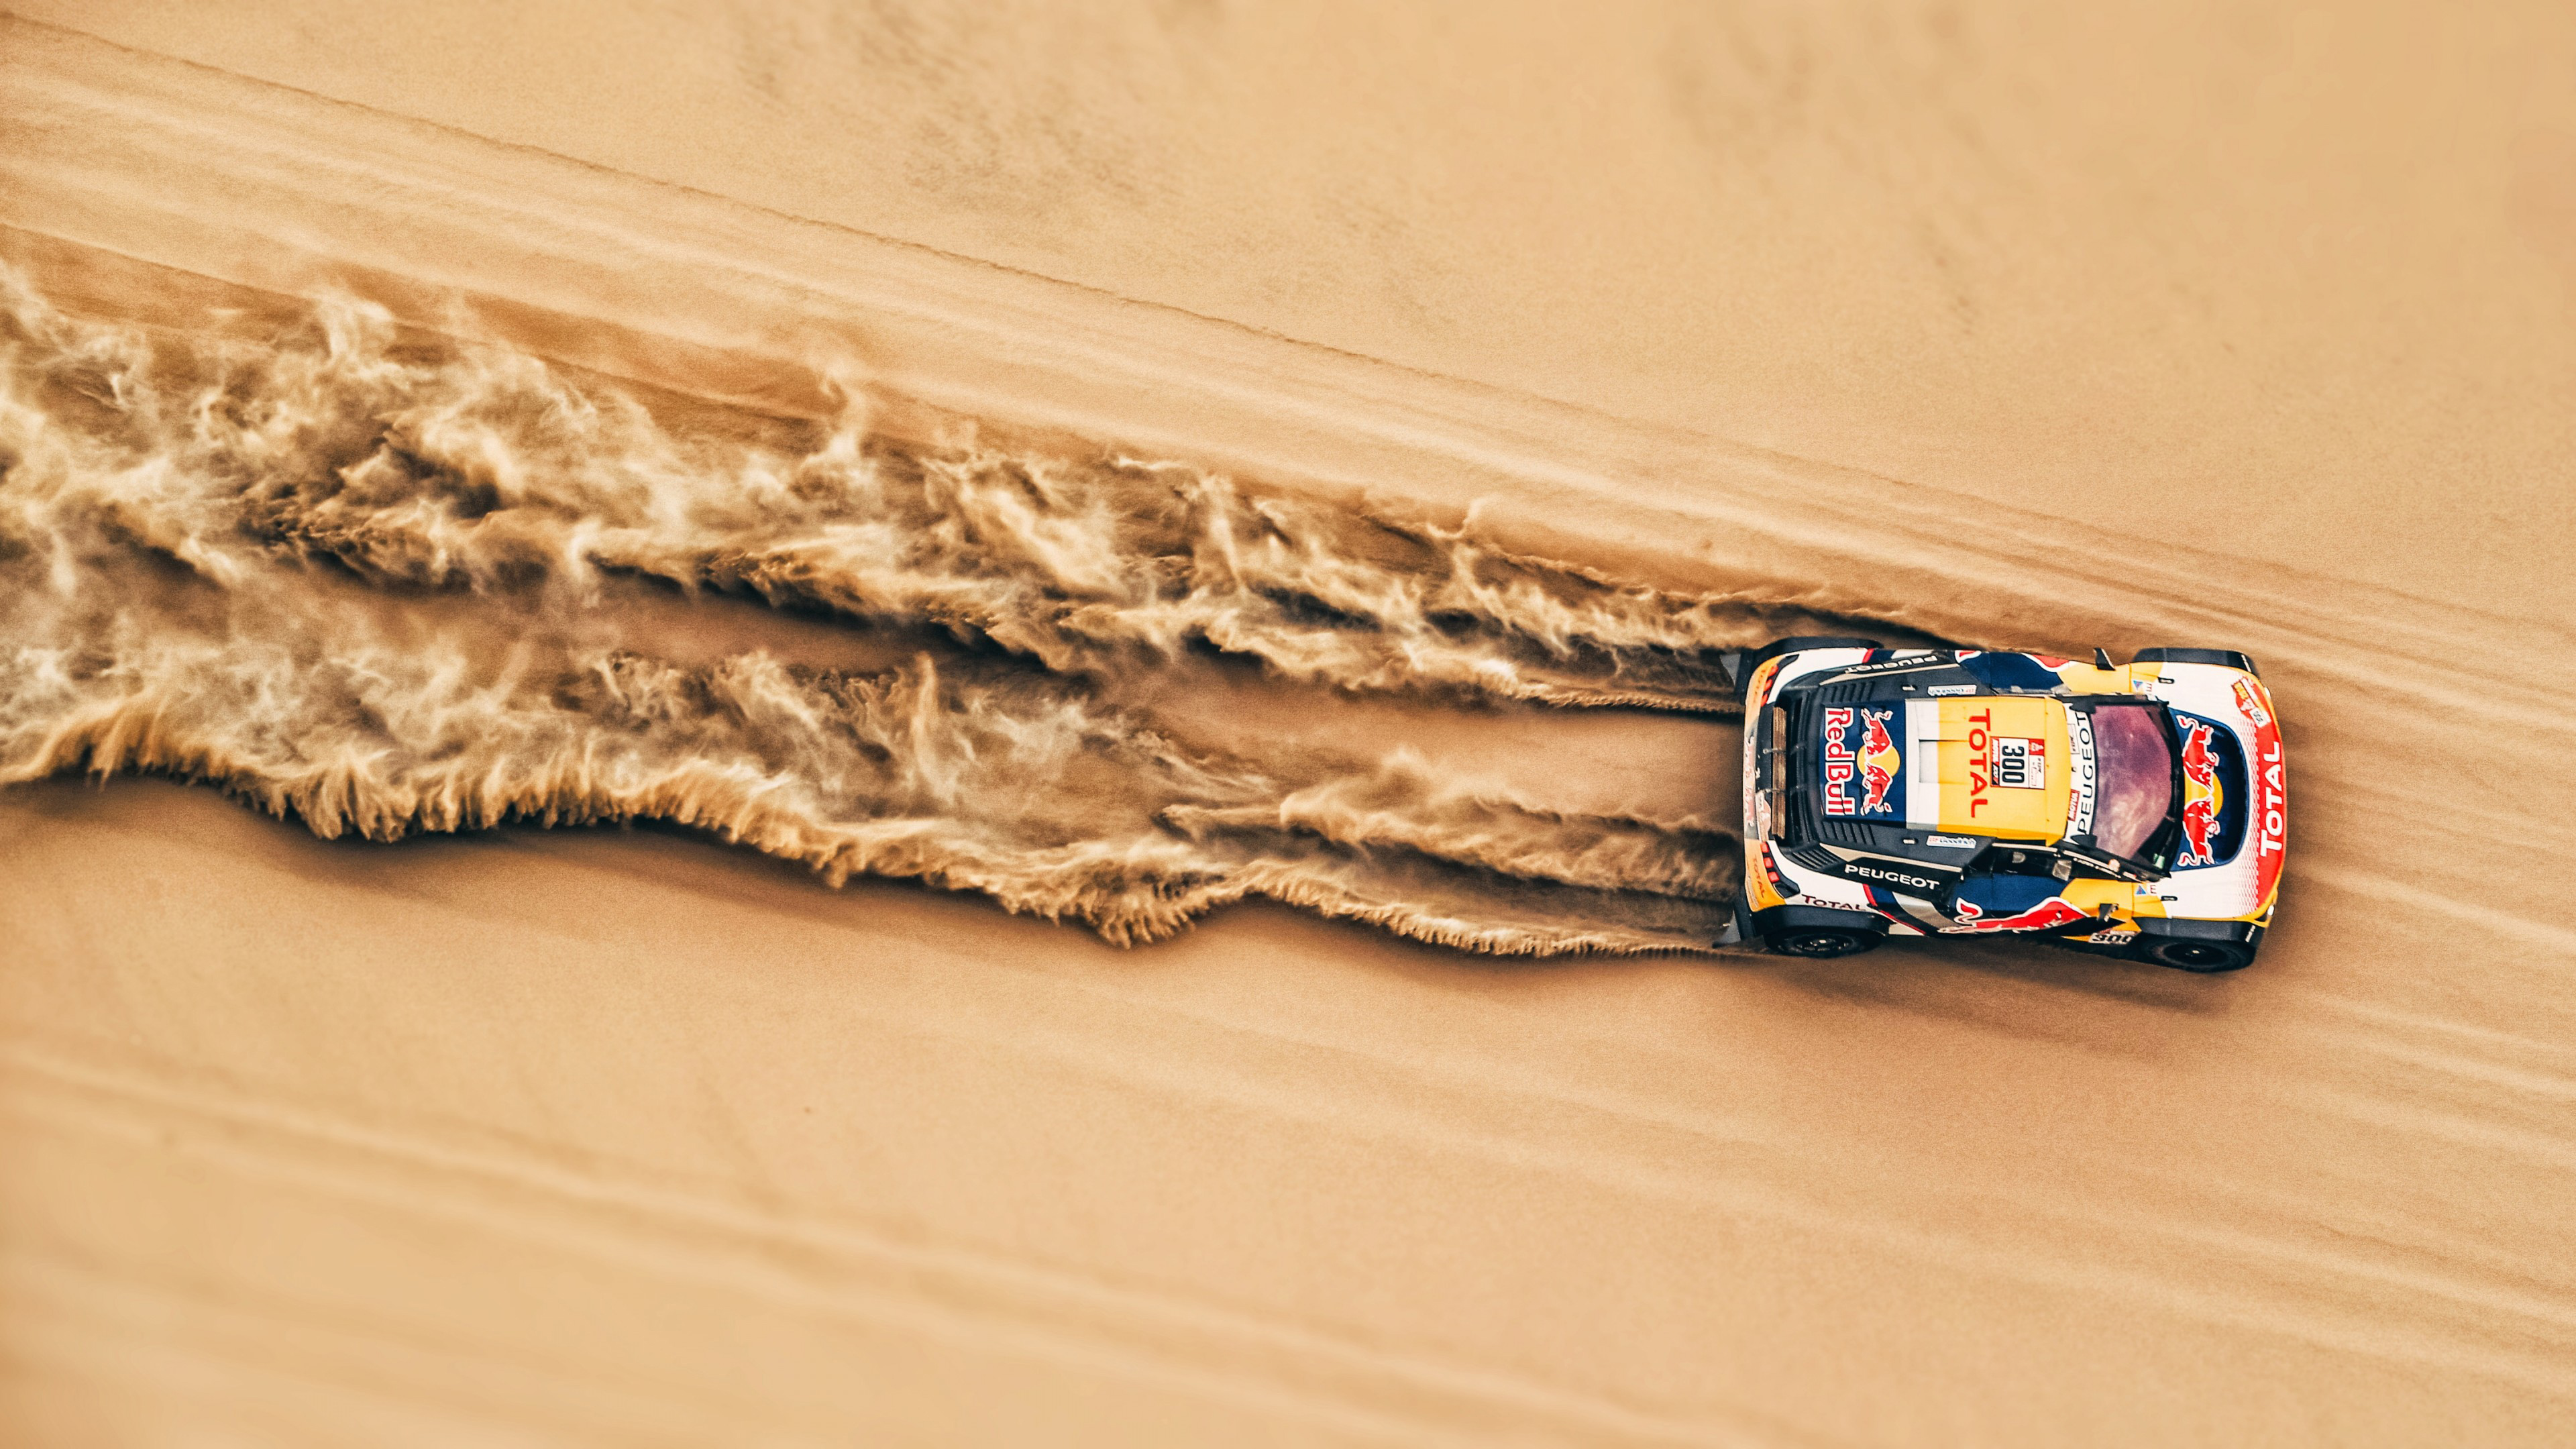 rally car in desert 4k 1546361541 - Rally Car In Desert 4k - sand wallpapers, red bull wallpapers, photography wallpapers, hd-wallpapers, drift wallpapers, desert wallpapers, cars wallpapers, 4k-wallpapers